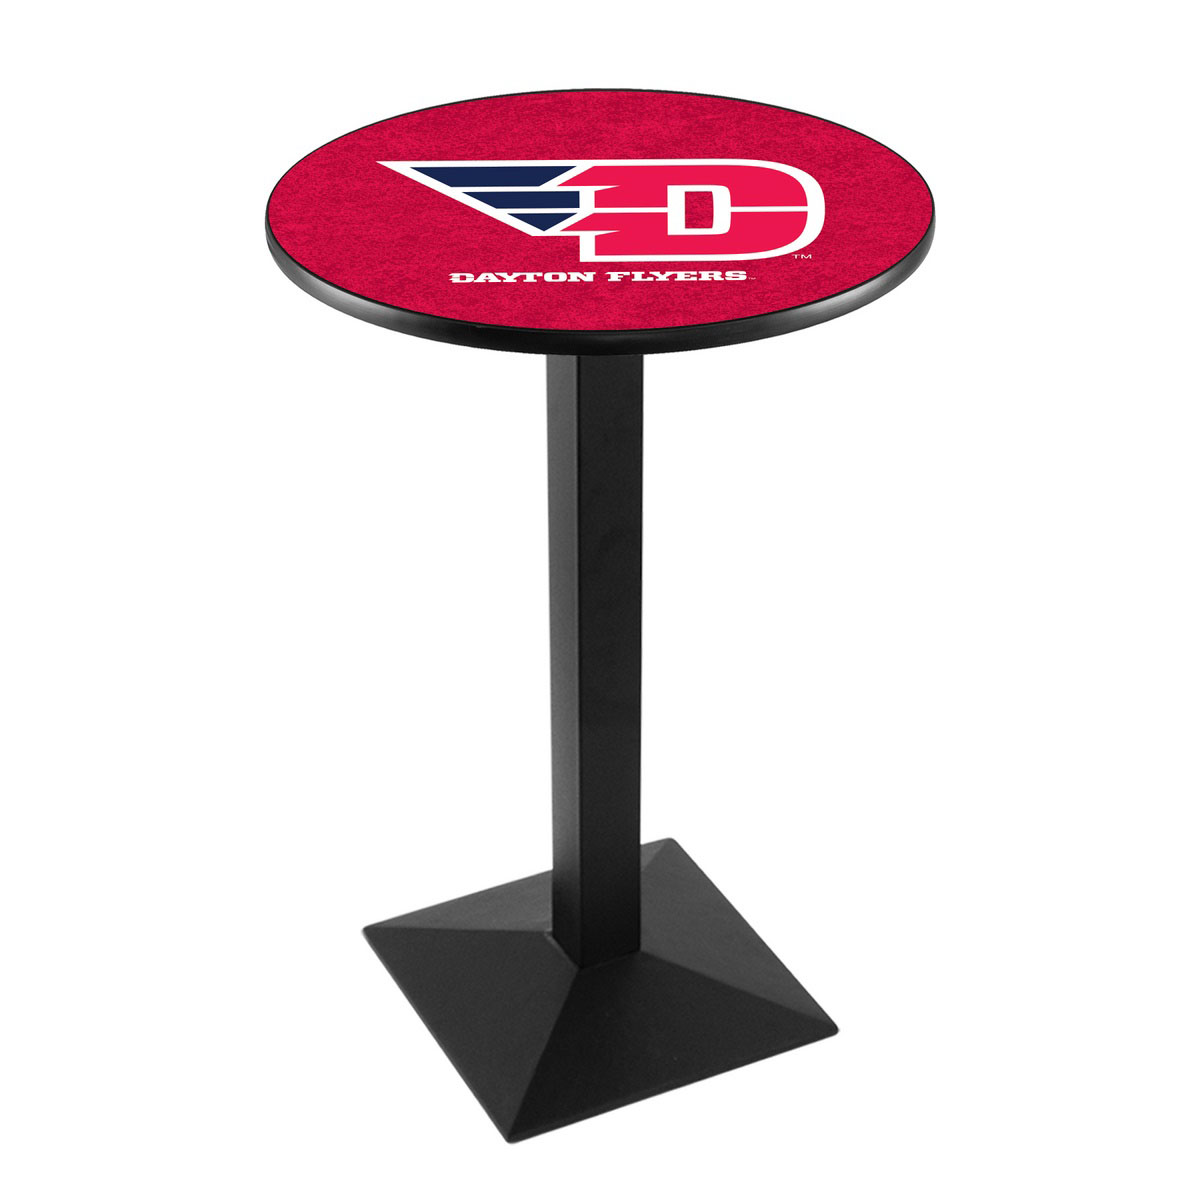 Select University-Dayton-Logo-Pub-Bar-Table-Square-Stand Product Picture 1367